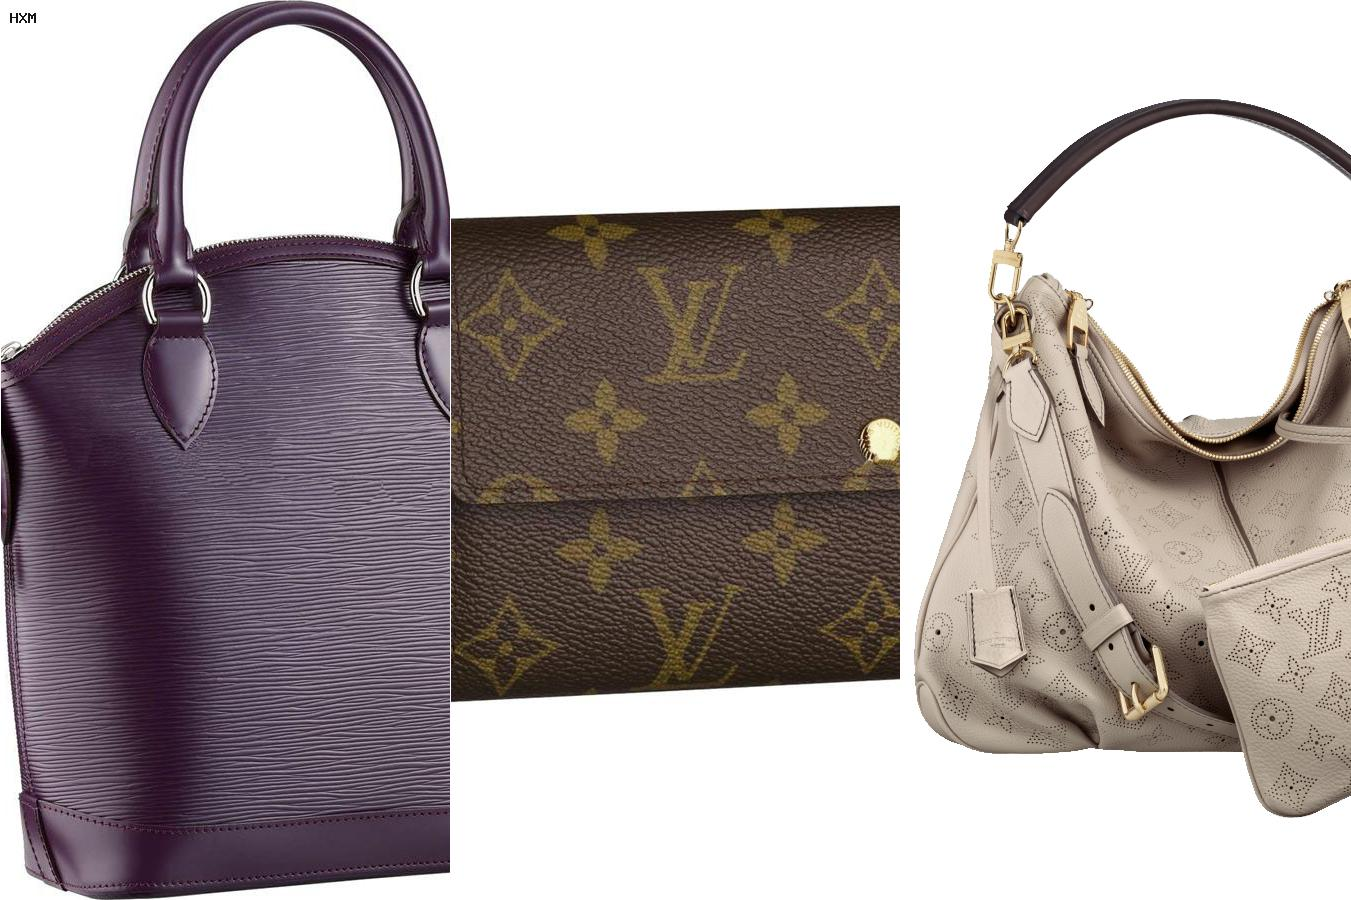 976ccbe349 cerco borsa louis vuitton